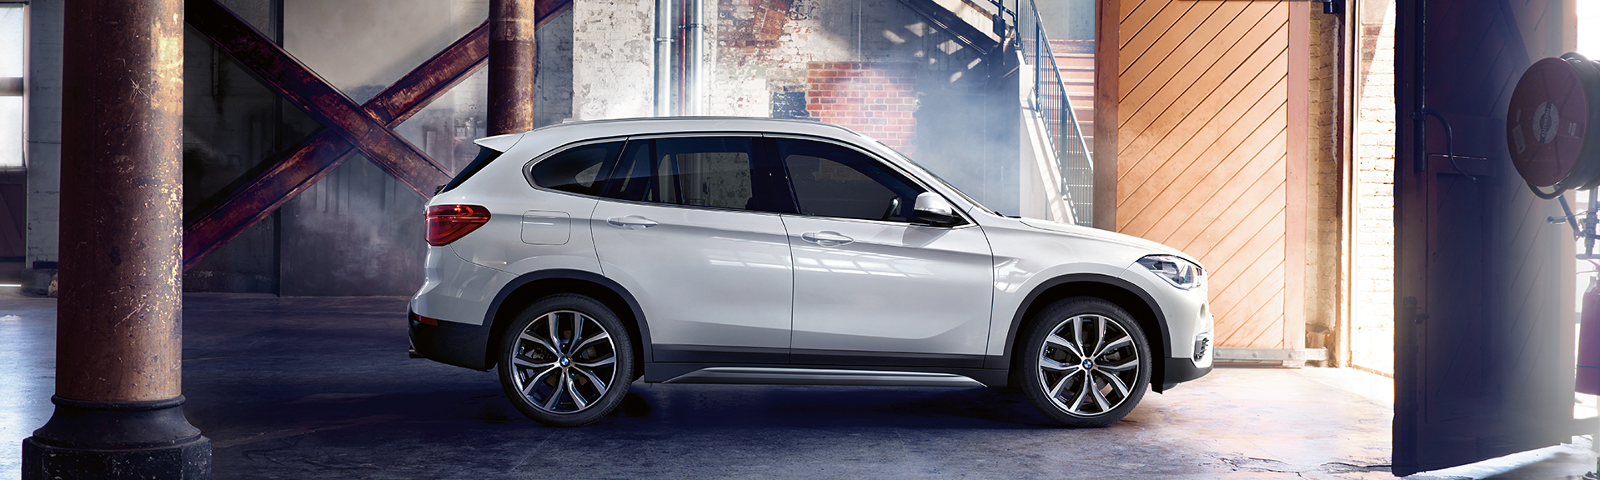 Lateral BMW X1